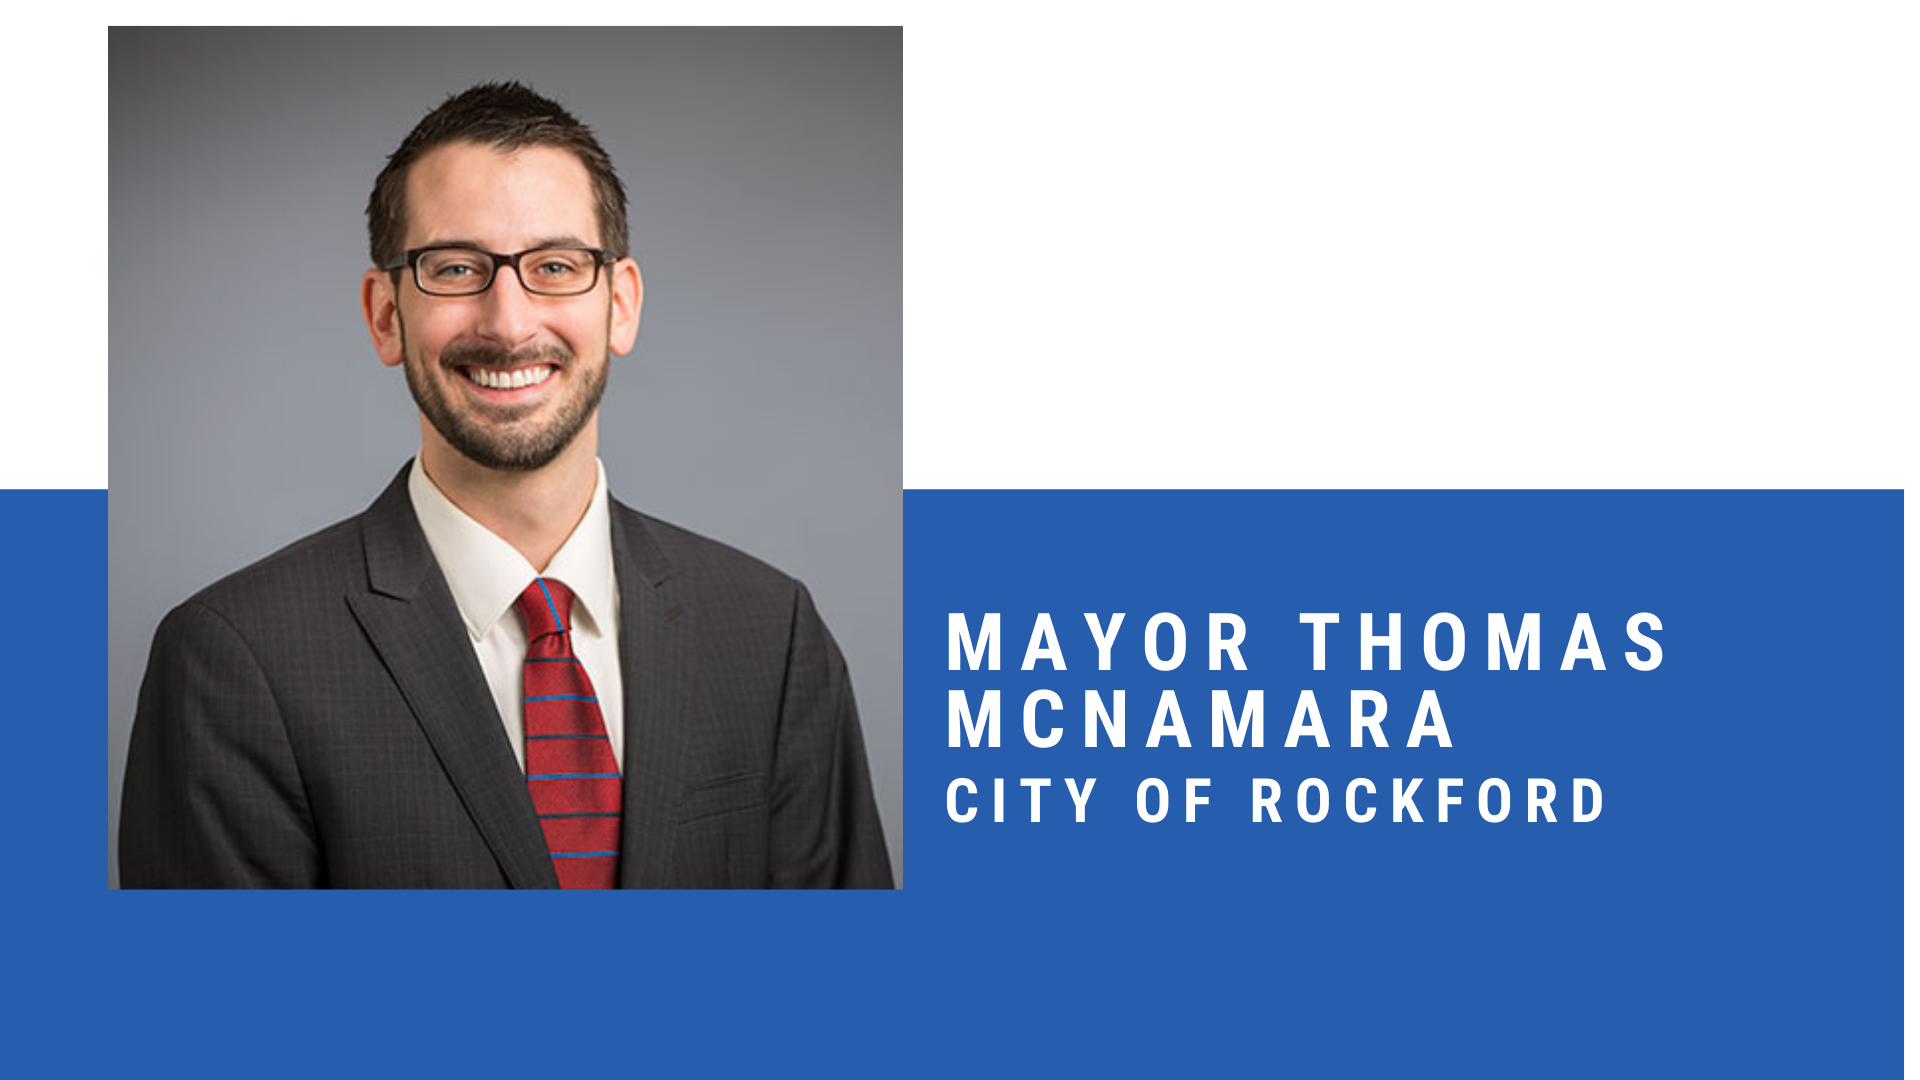 Mayor Thomas McNamara